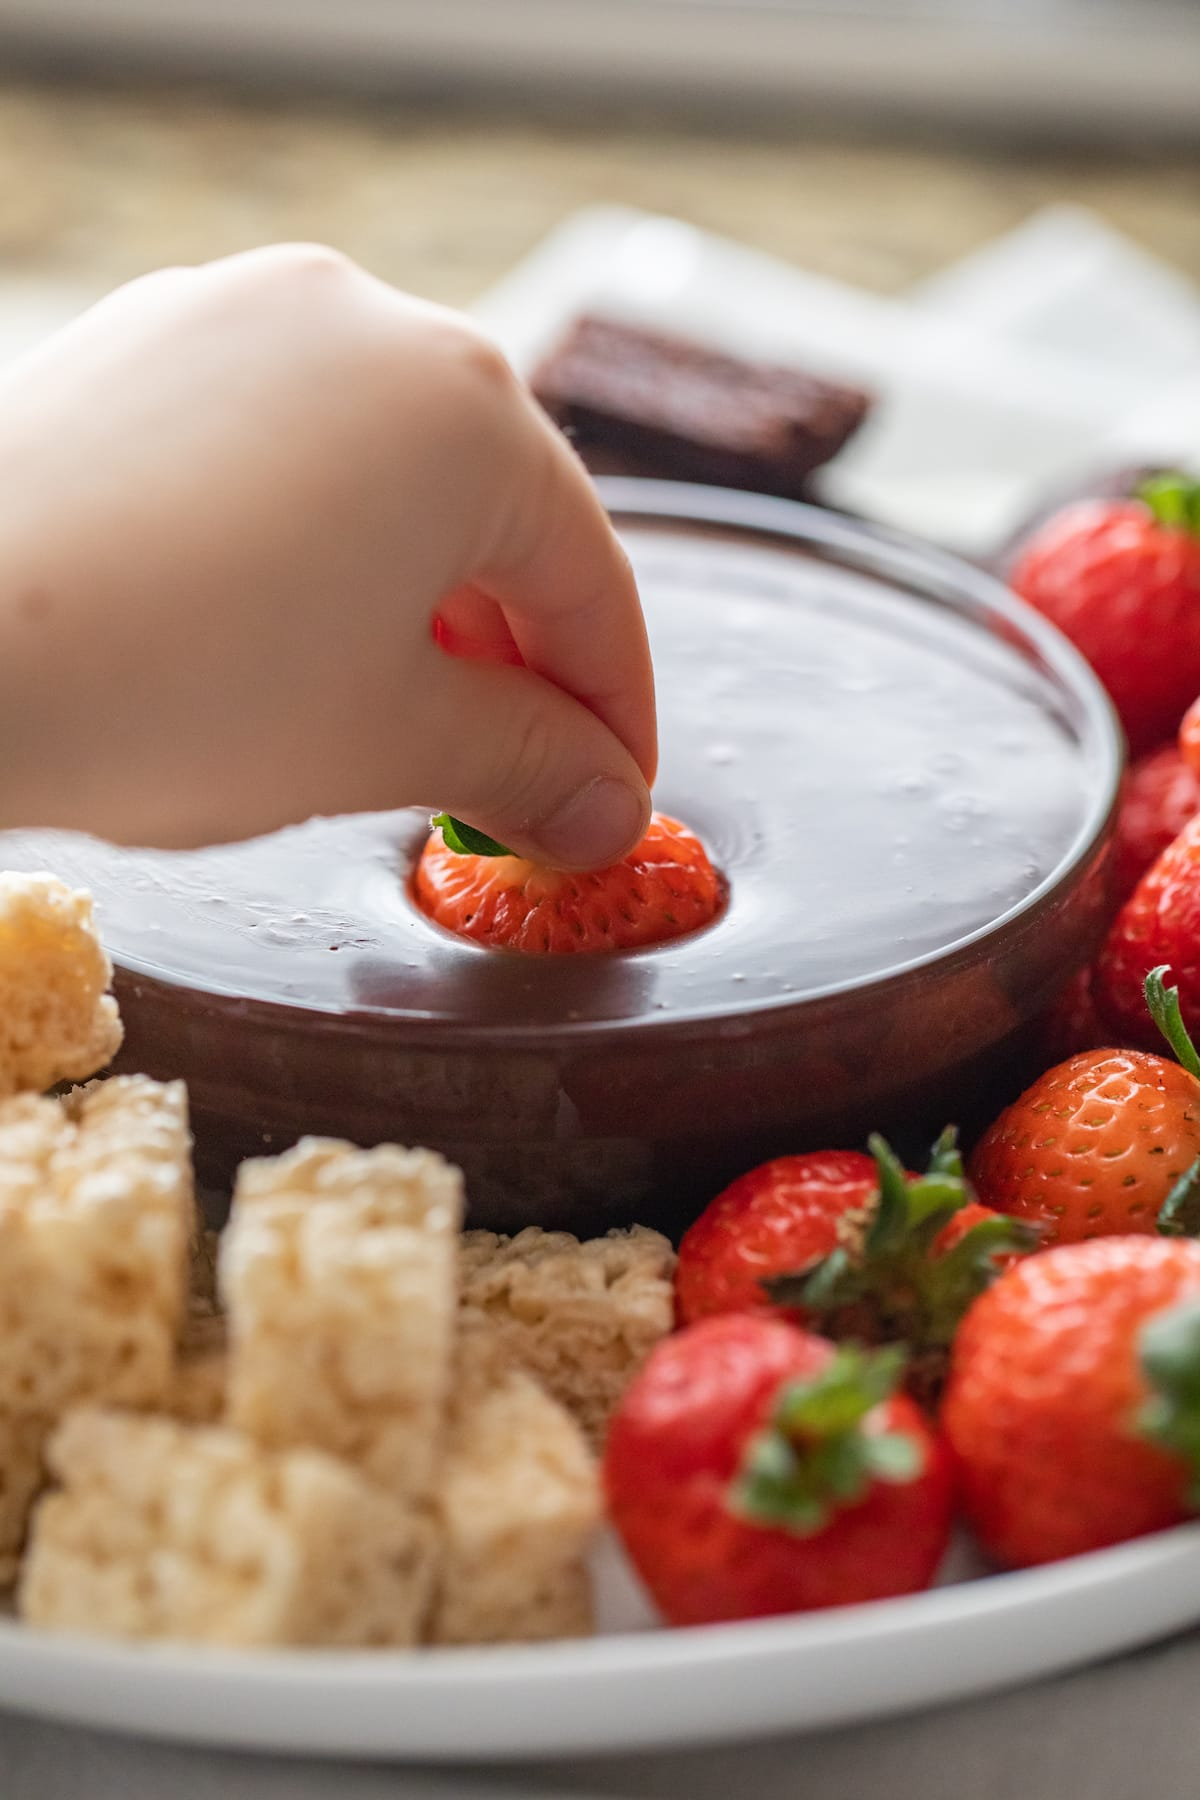 dipping fresh strawberry into bowl of dipping chocolate